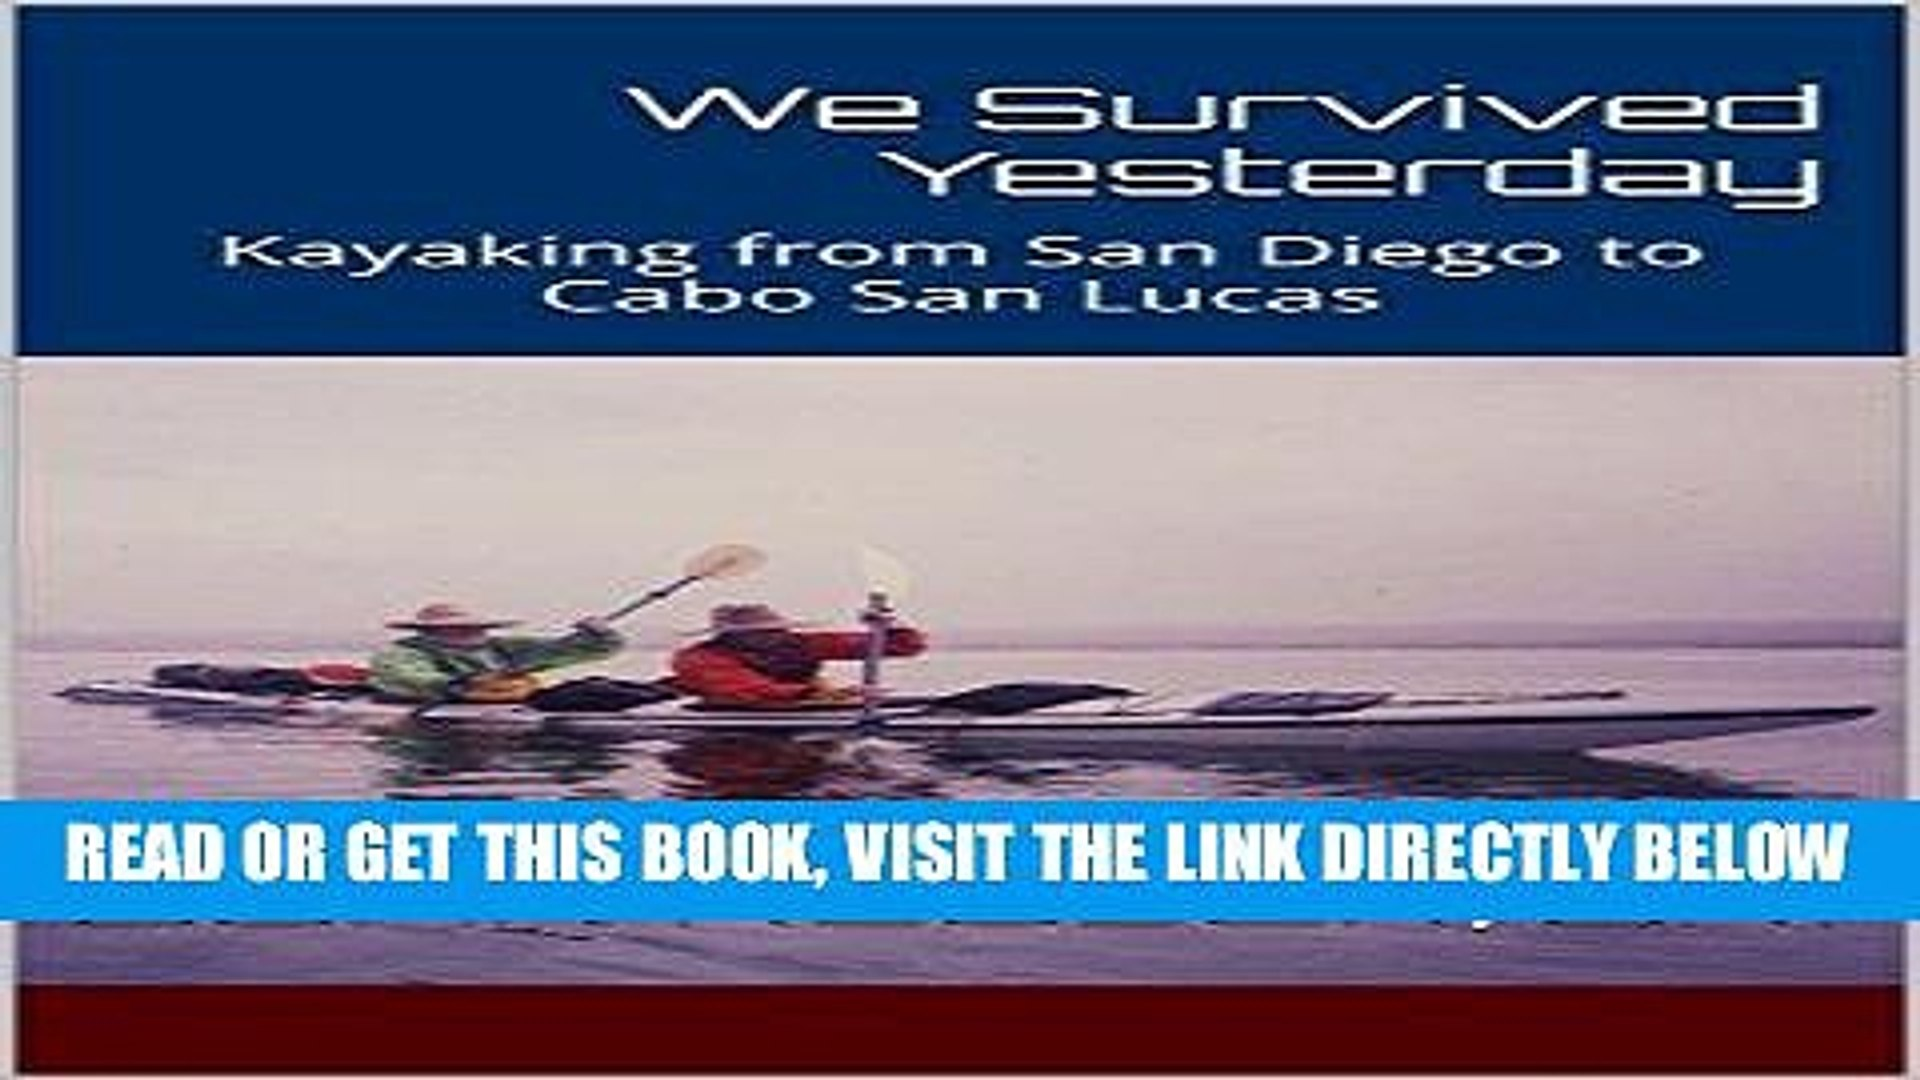 Ebook Download We Survived Yesterday Kayaking From San Diego To Cabo San Lucas Get Now